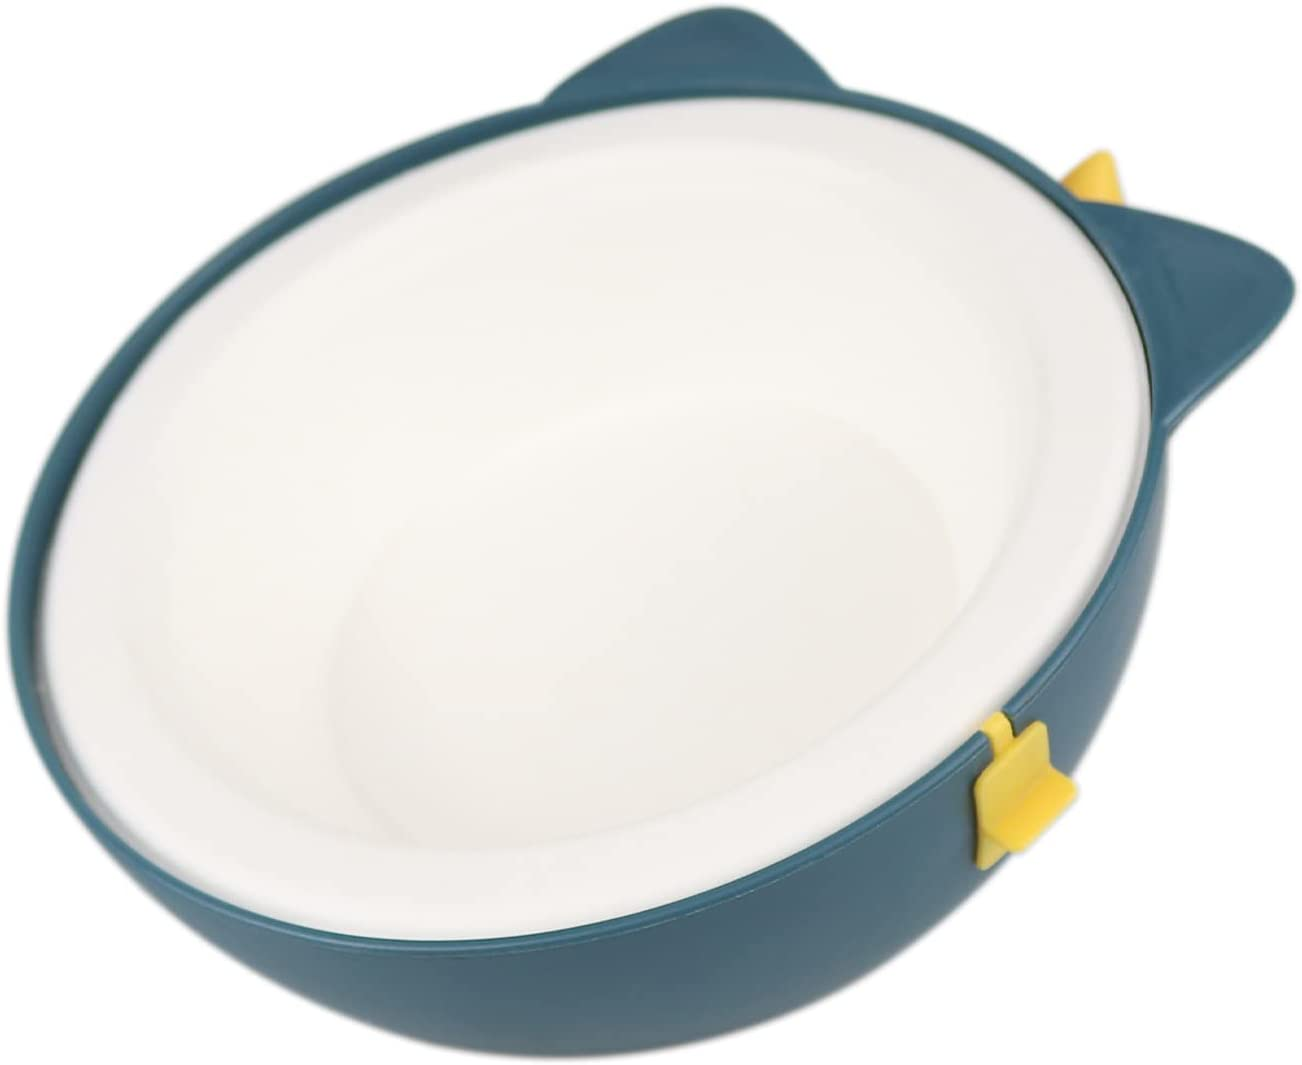 Cat Bowl,15°Tilted Cat Food Bowls,Non Slip Cat Feeding Bowls,Disposable Pet Food and Water Dishes for Cats,Puppies,Small Dogs and Rabbits